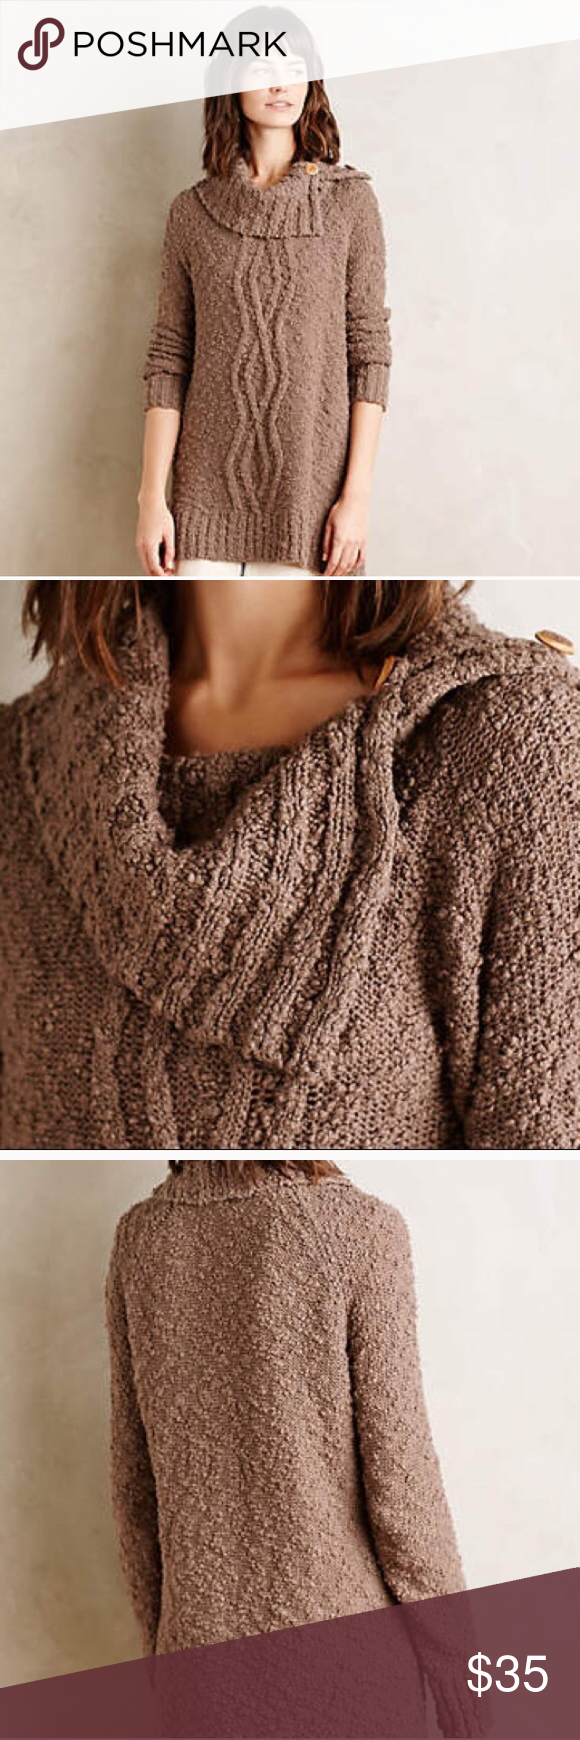 MAKE OFFER NWT Anthropologie Moth Taupe Sweater S NWT | Moth, Cowl ...